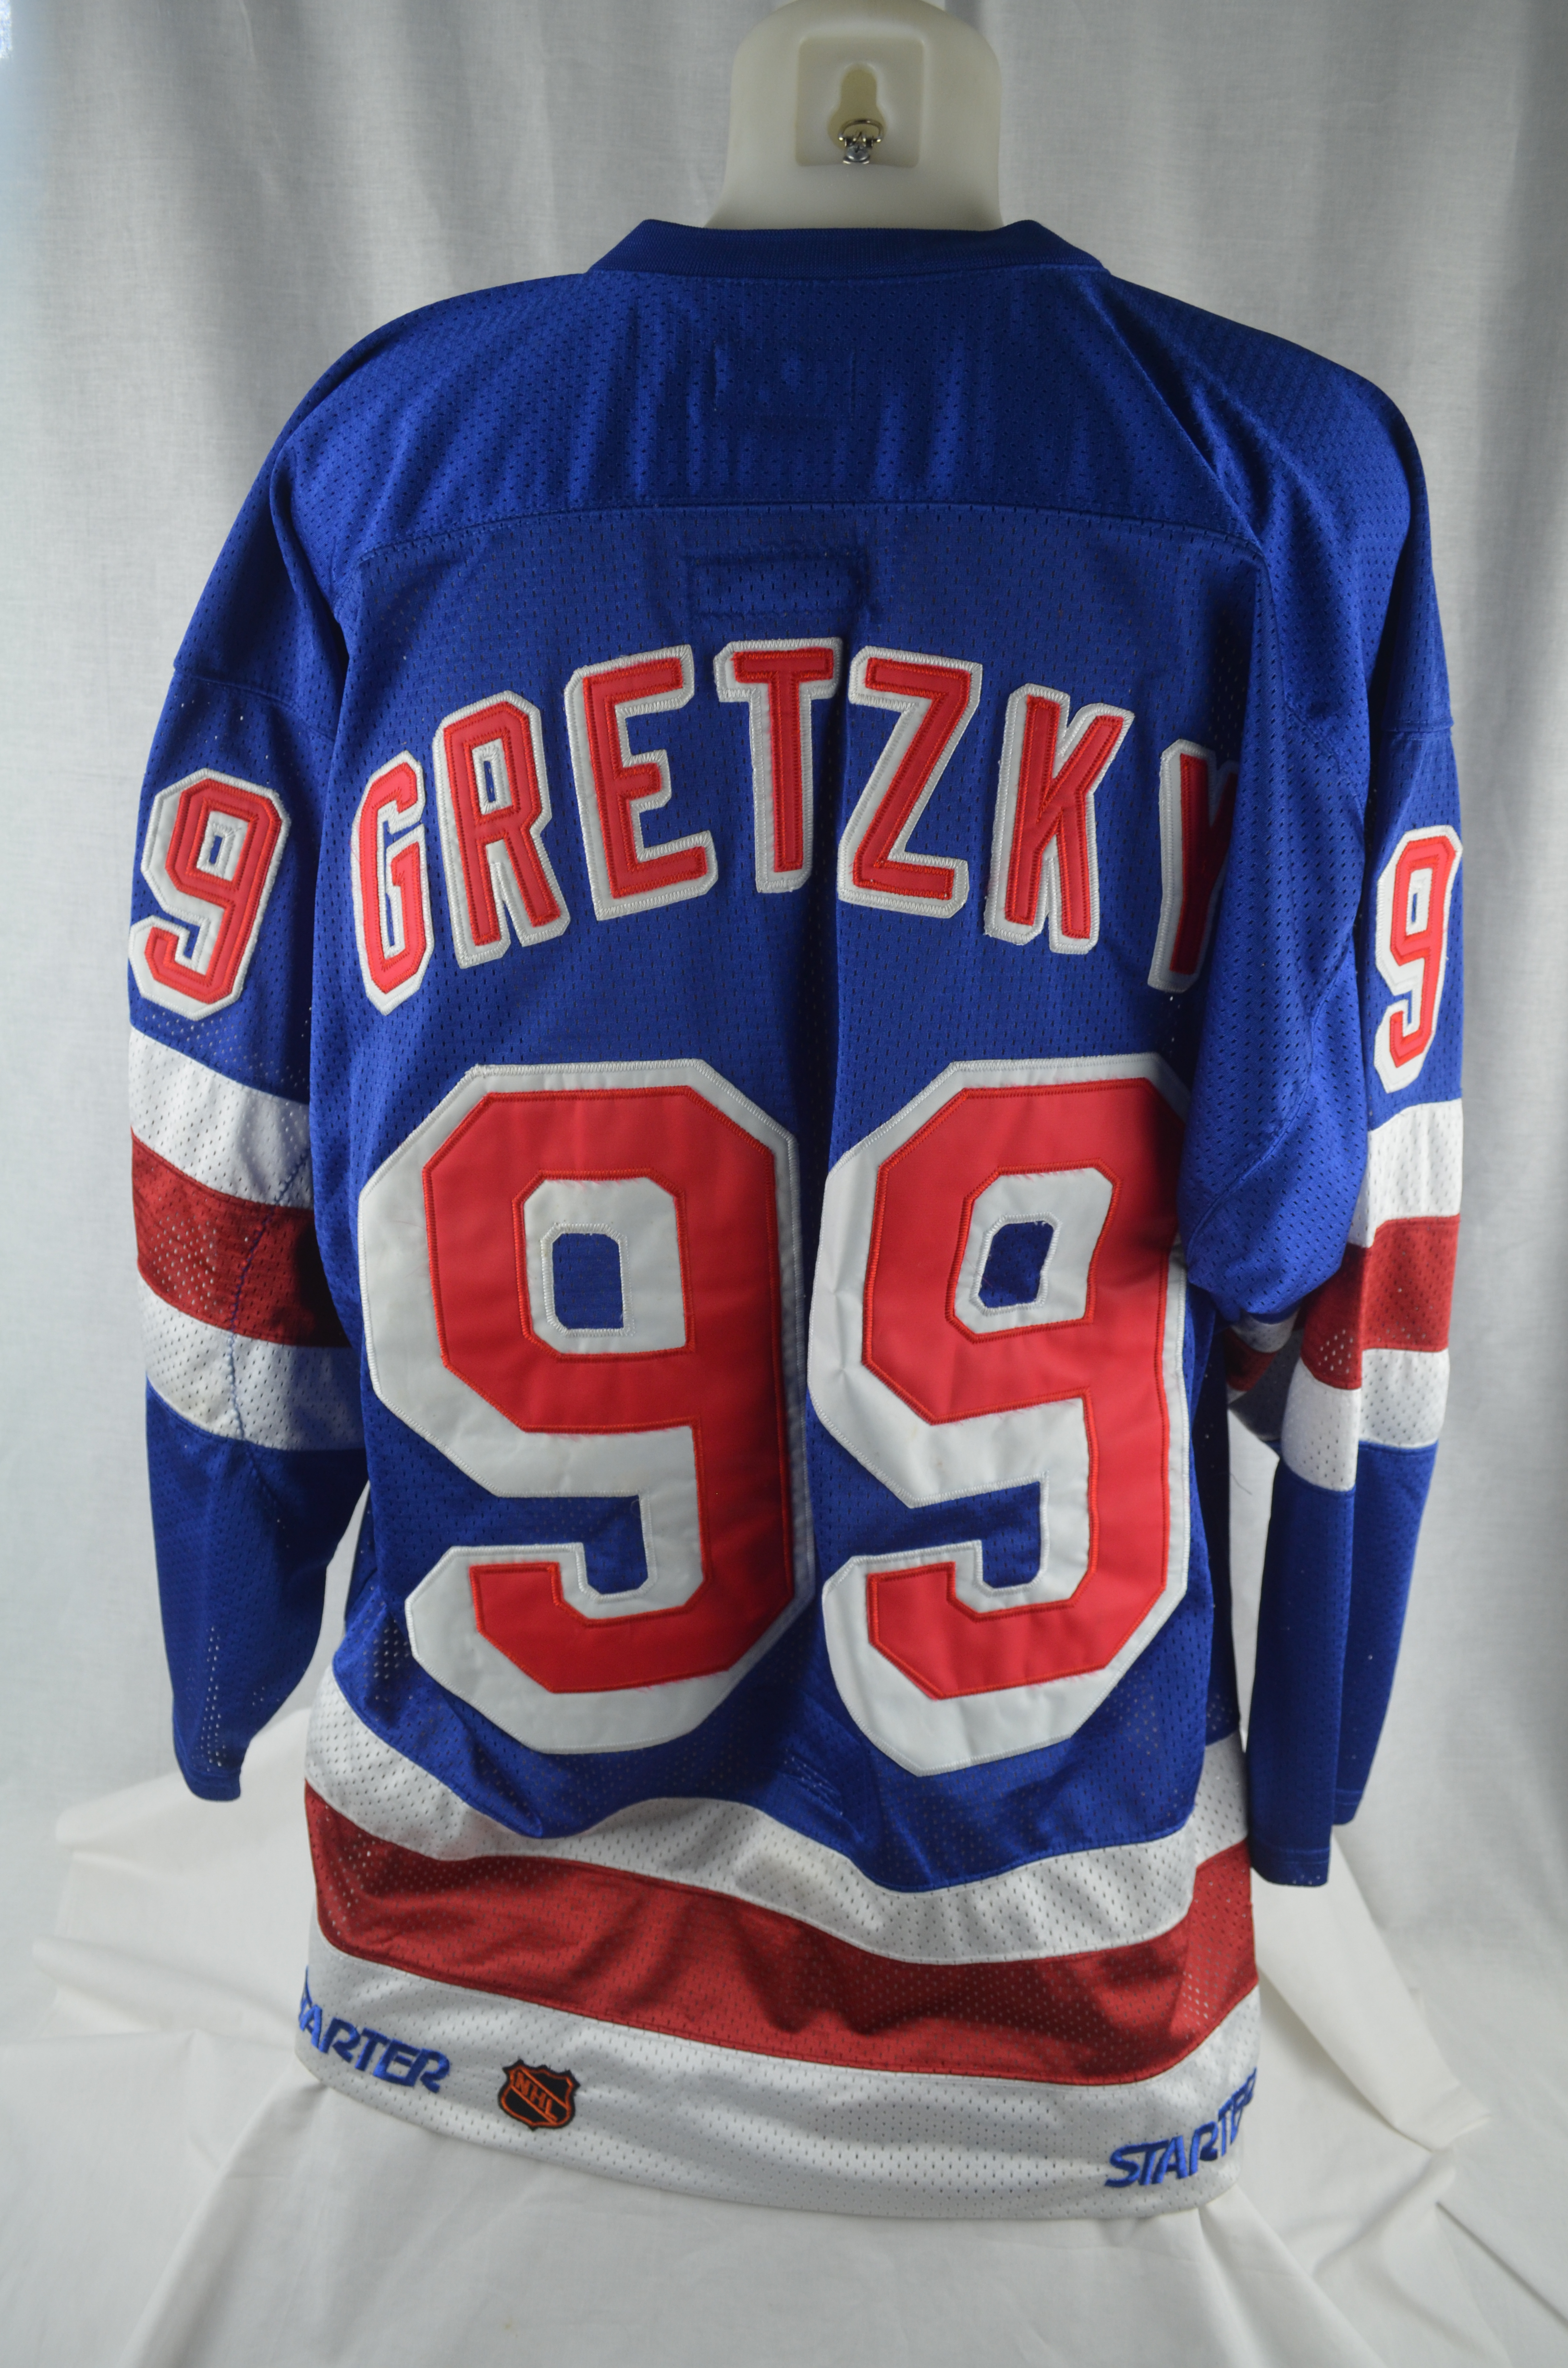 timeless design 0ad08 58043 Lot Detail - Wayne Gretzky New York Rangers Authentic ...